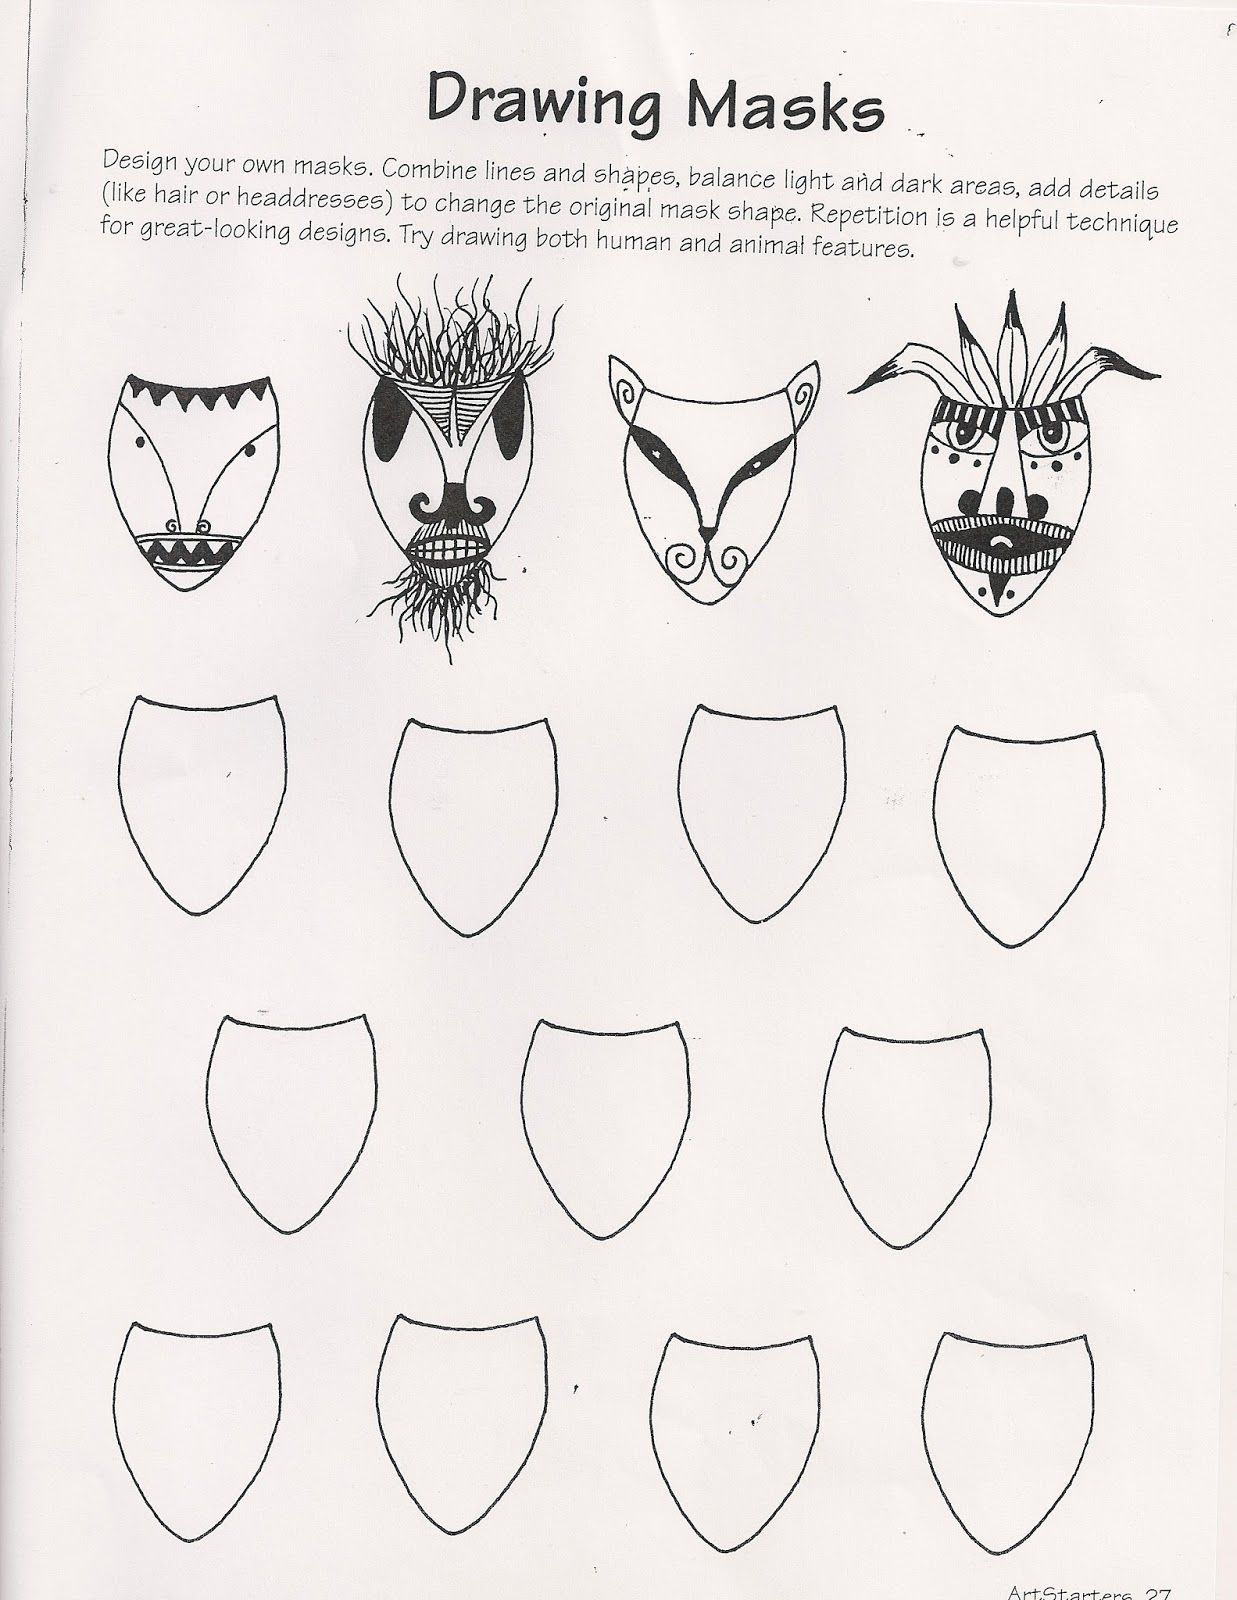 Worksheet Art Worksheets For Elementary ande cooks drawing masks worksheet and art education substitute lesson handouts pinterest sun native ame